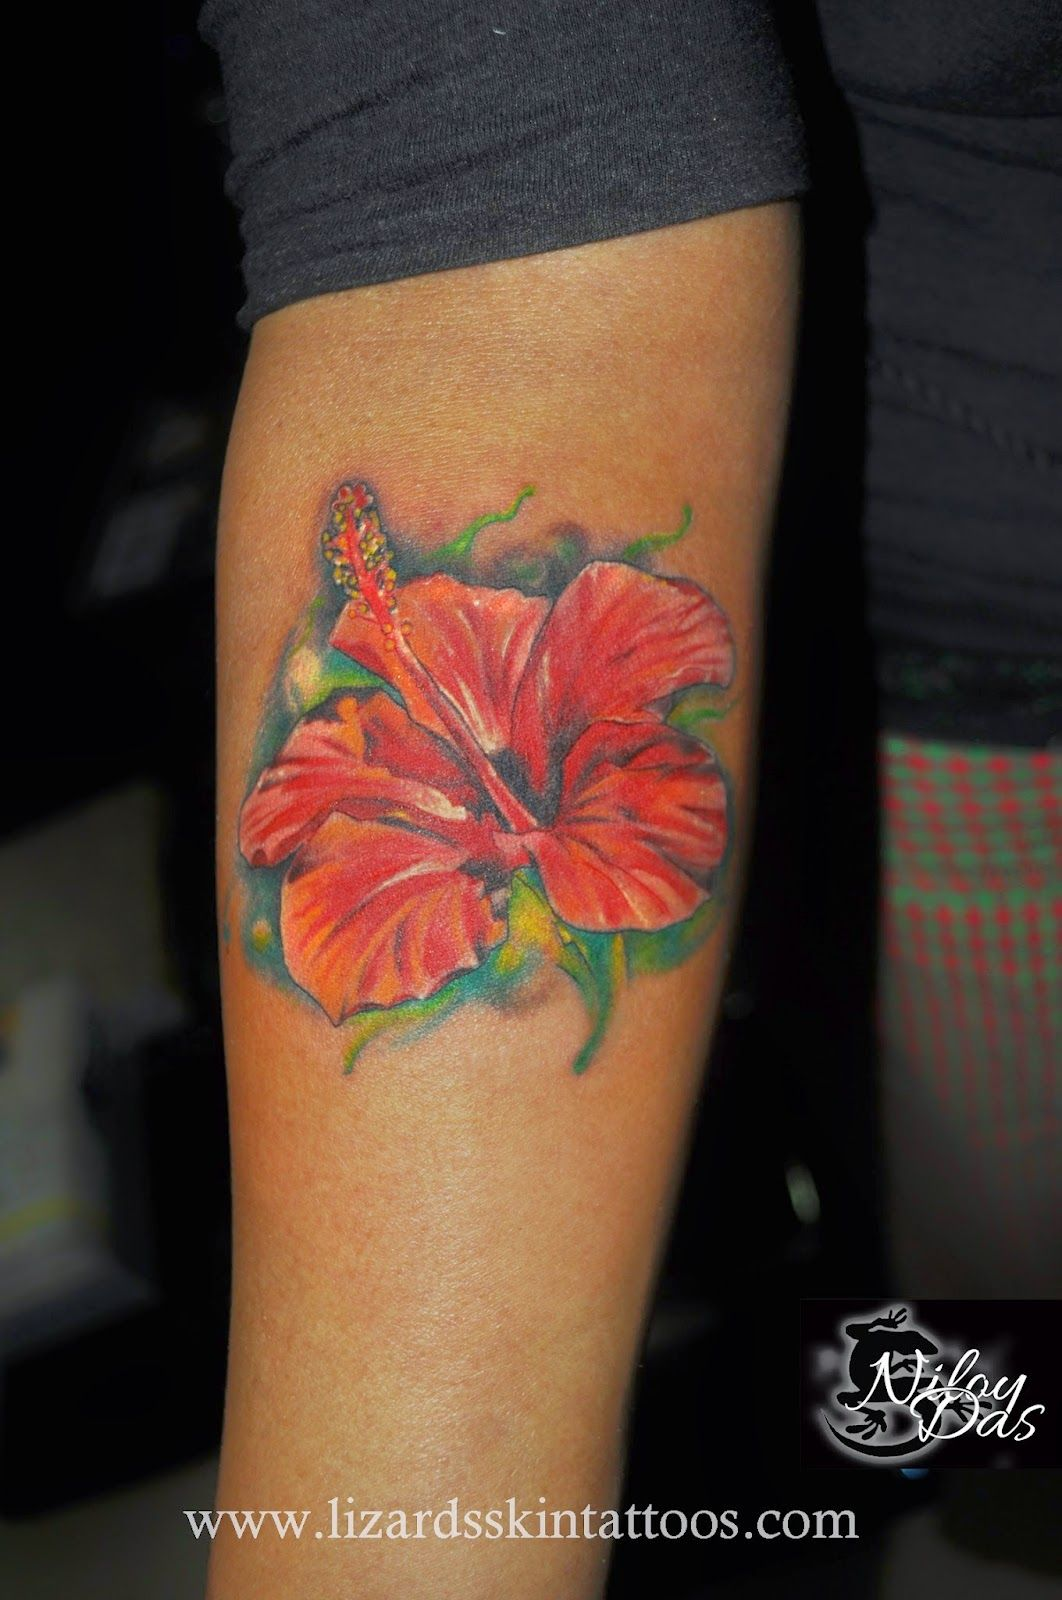 24 Hibiscus Flower Tattoos Designs Trends Ideas: Hibiscus Flower Tattoo By Artist Niloy Das, India